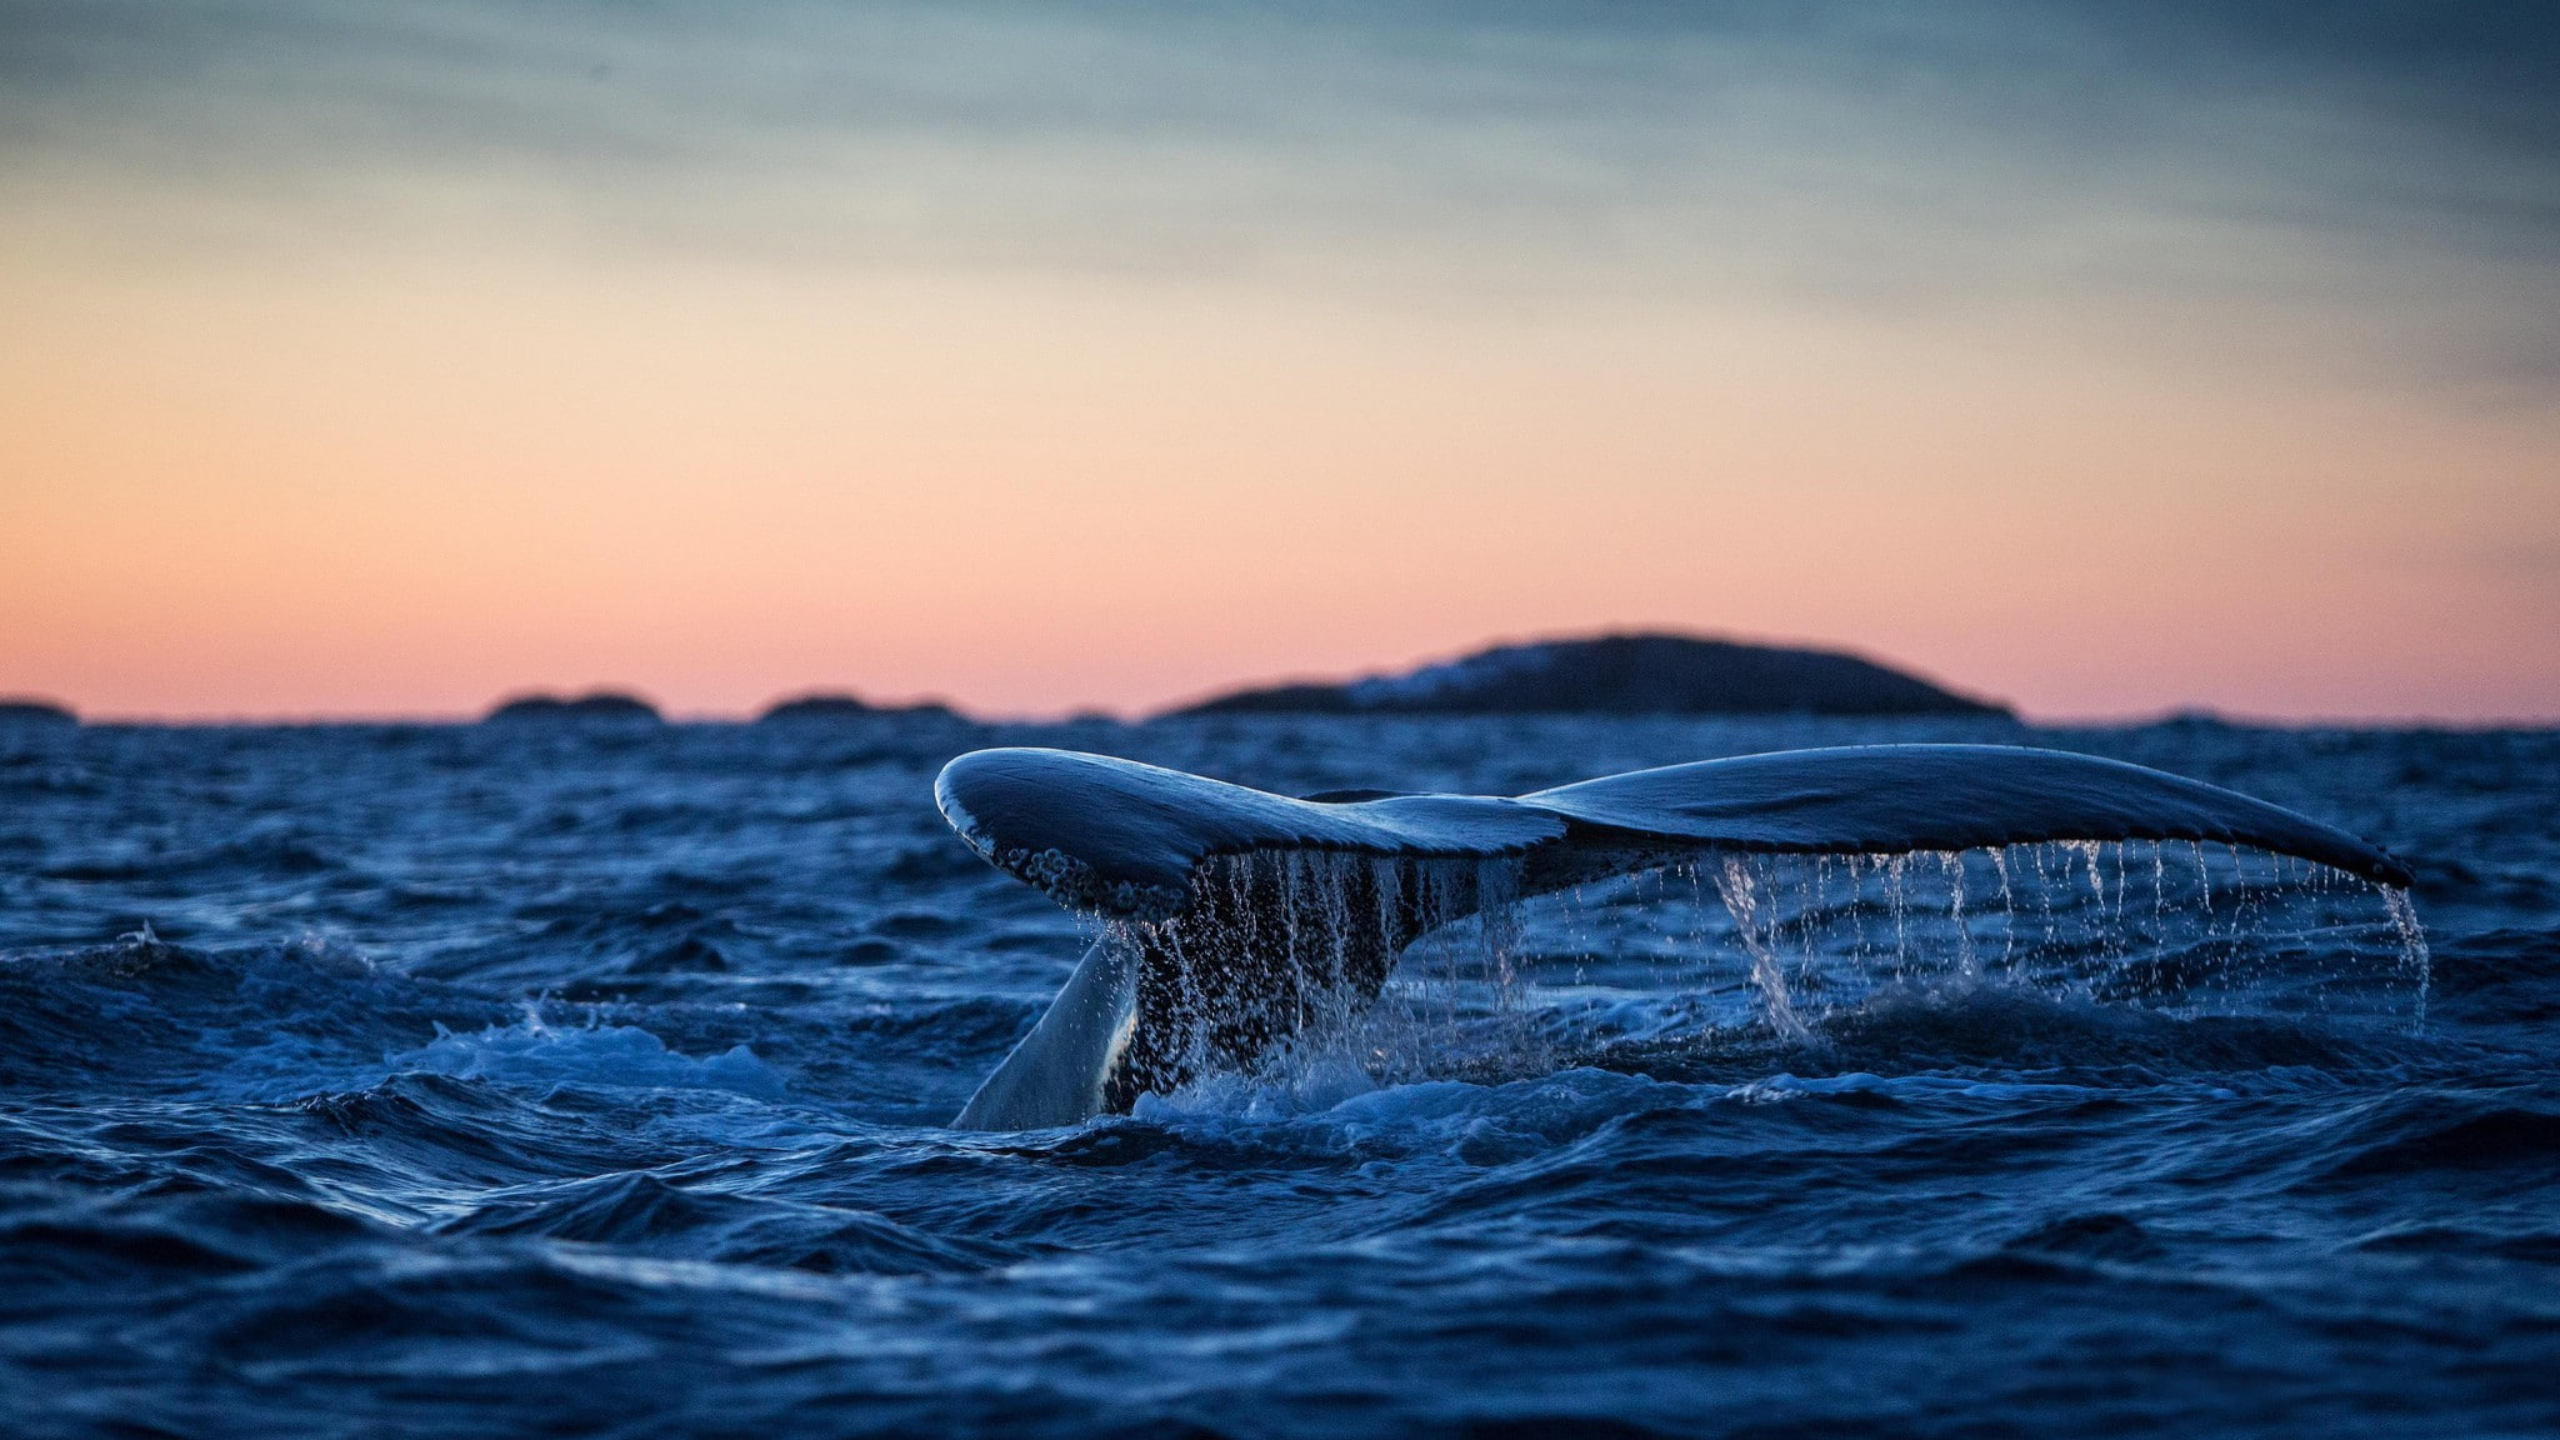 sea whales pictures